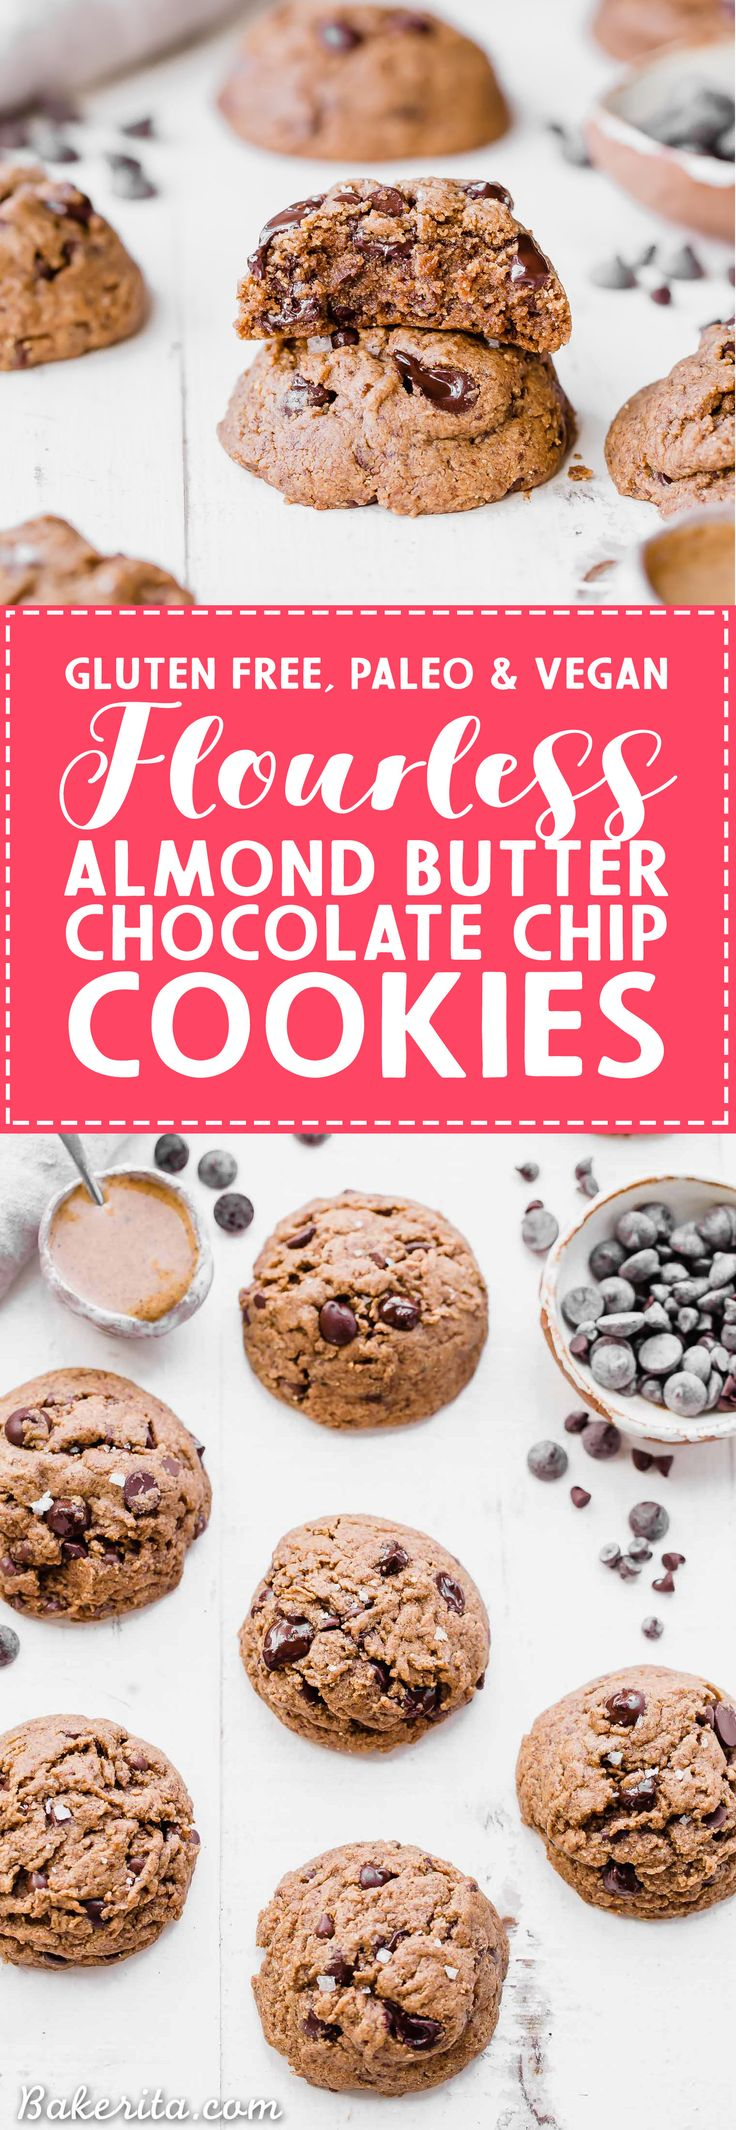 These naturally Flourless Almond Butter Chocolate Chip Cookies are so tender that they melt in your mouth! These flavorful cookies have just 5 ingredients and they are gluten-free, Paleo, refined sugar-free and vegan.